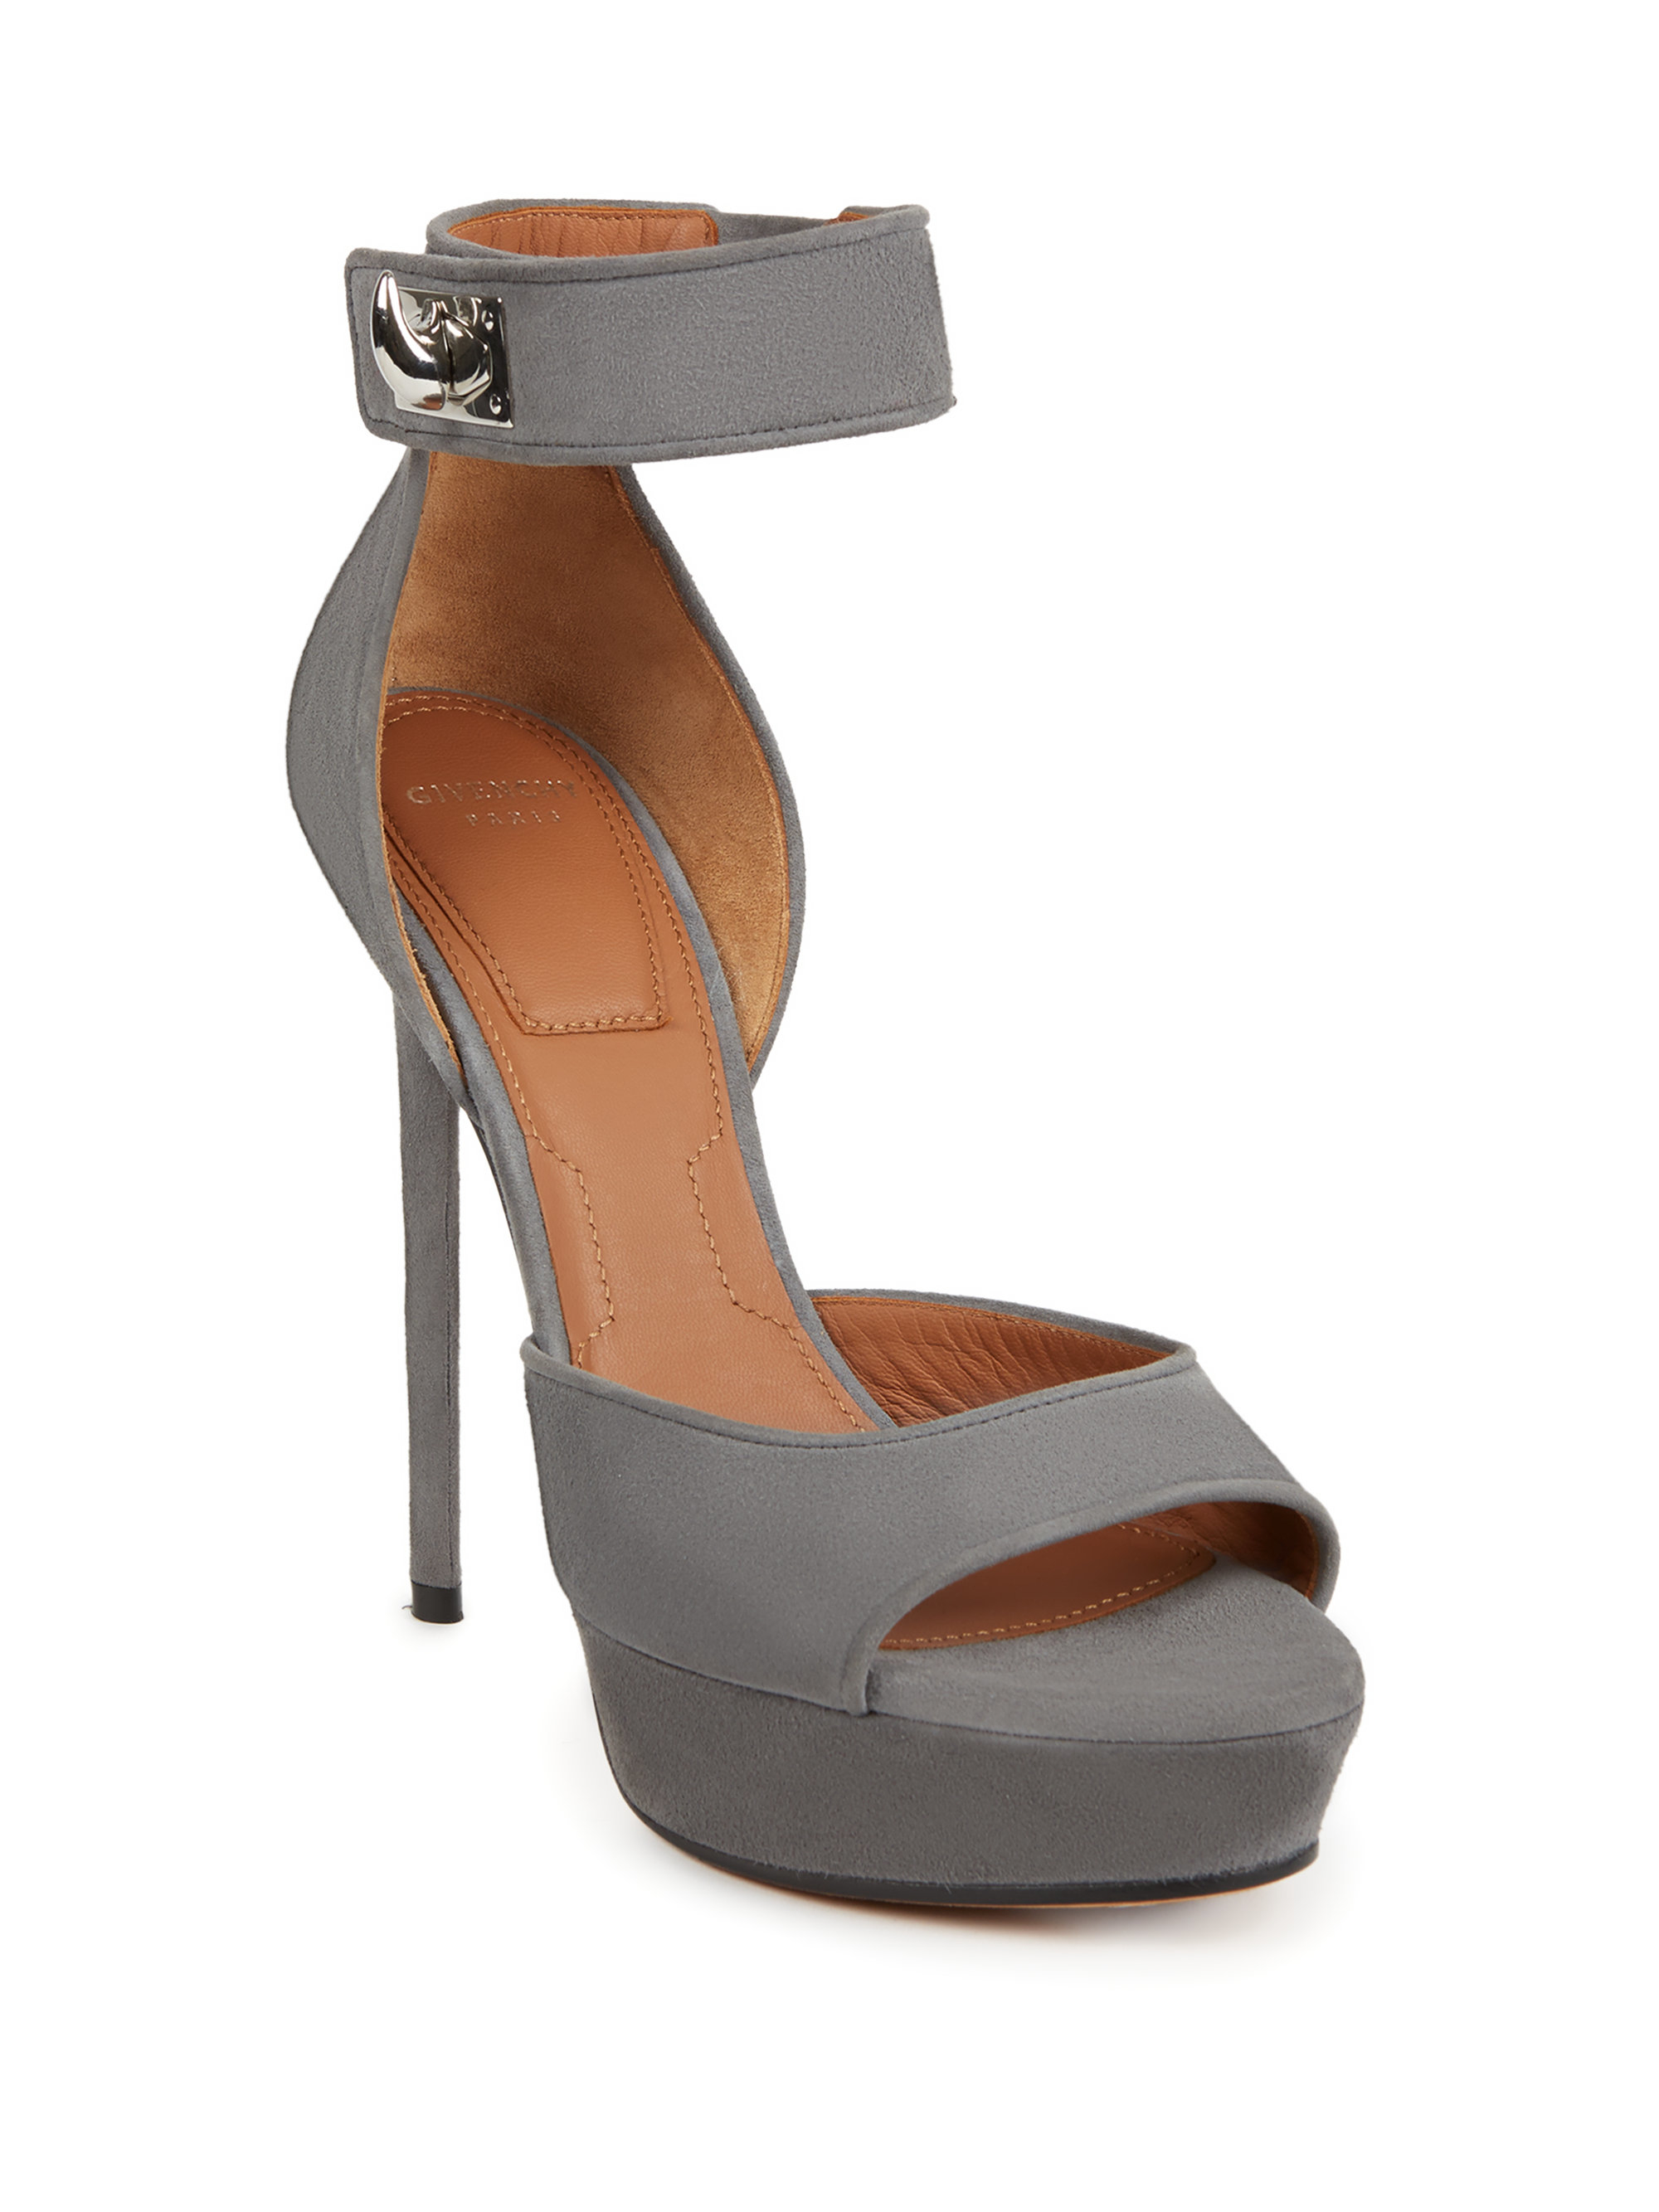 dc8df66c1aed Lyst - Givenchy Suede Shark-lock Platform Sandals in Gray